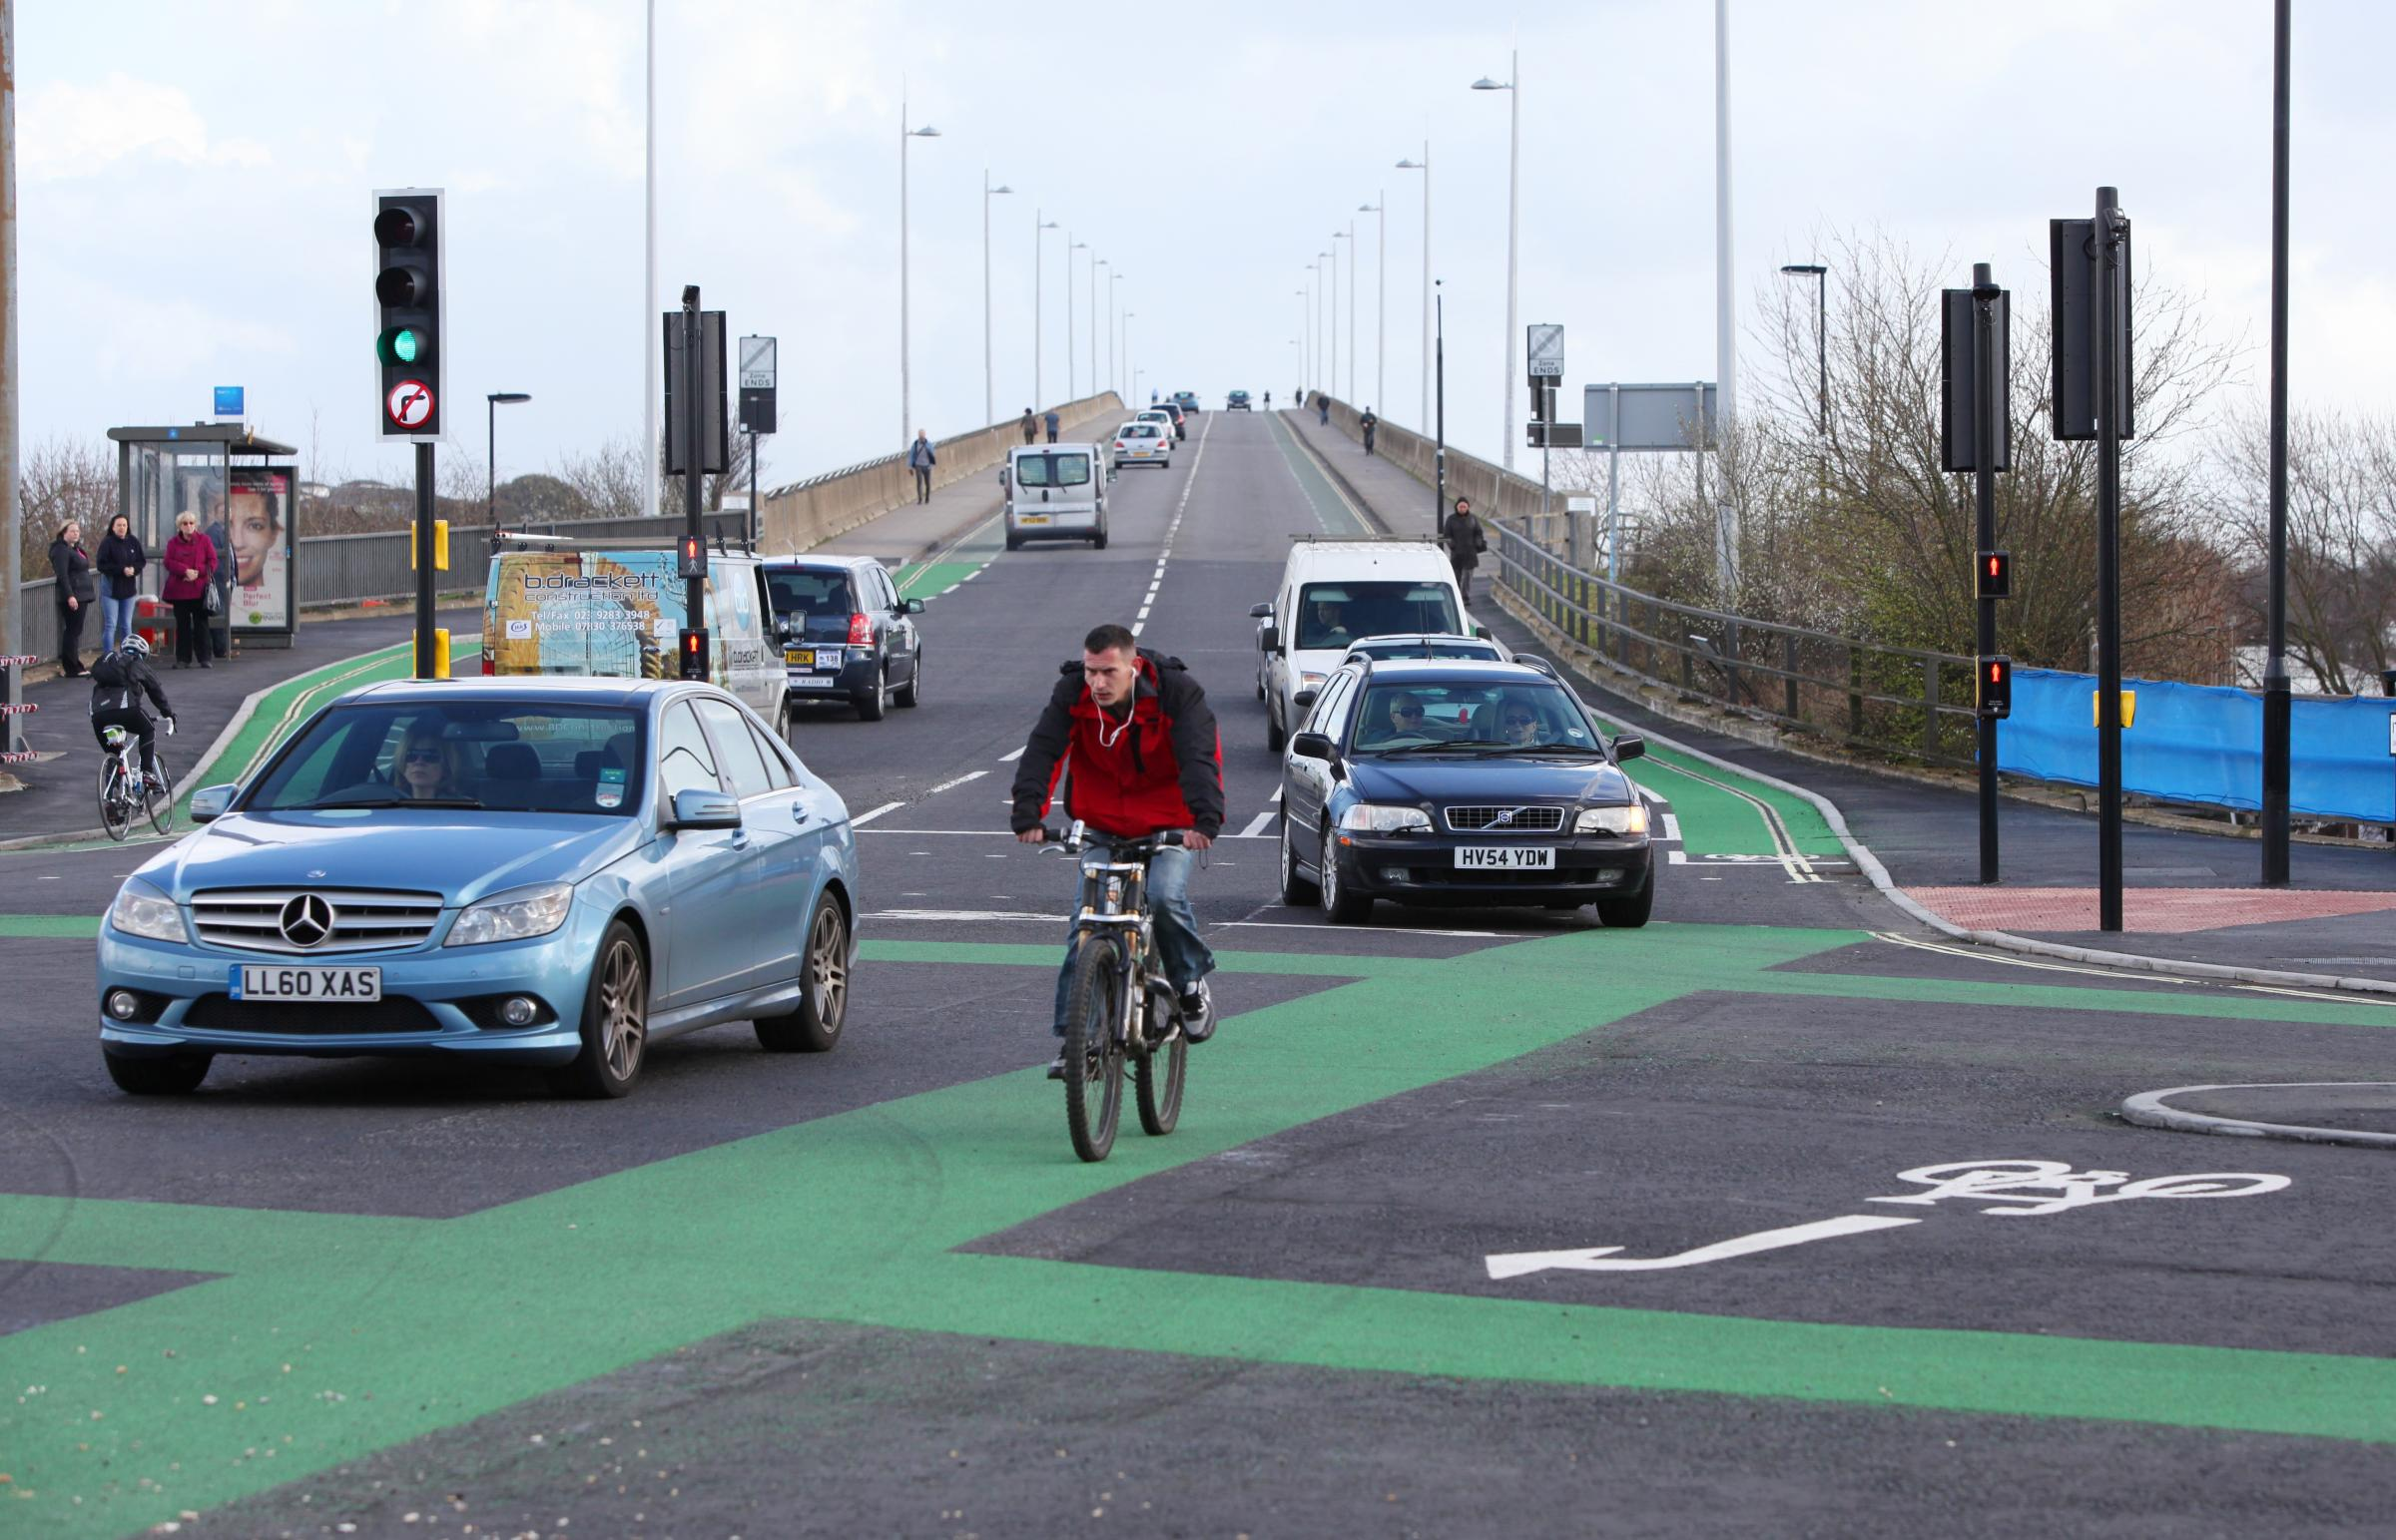 Bike friendly junction 'has made things worse' say cyclists